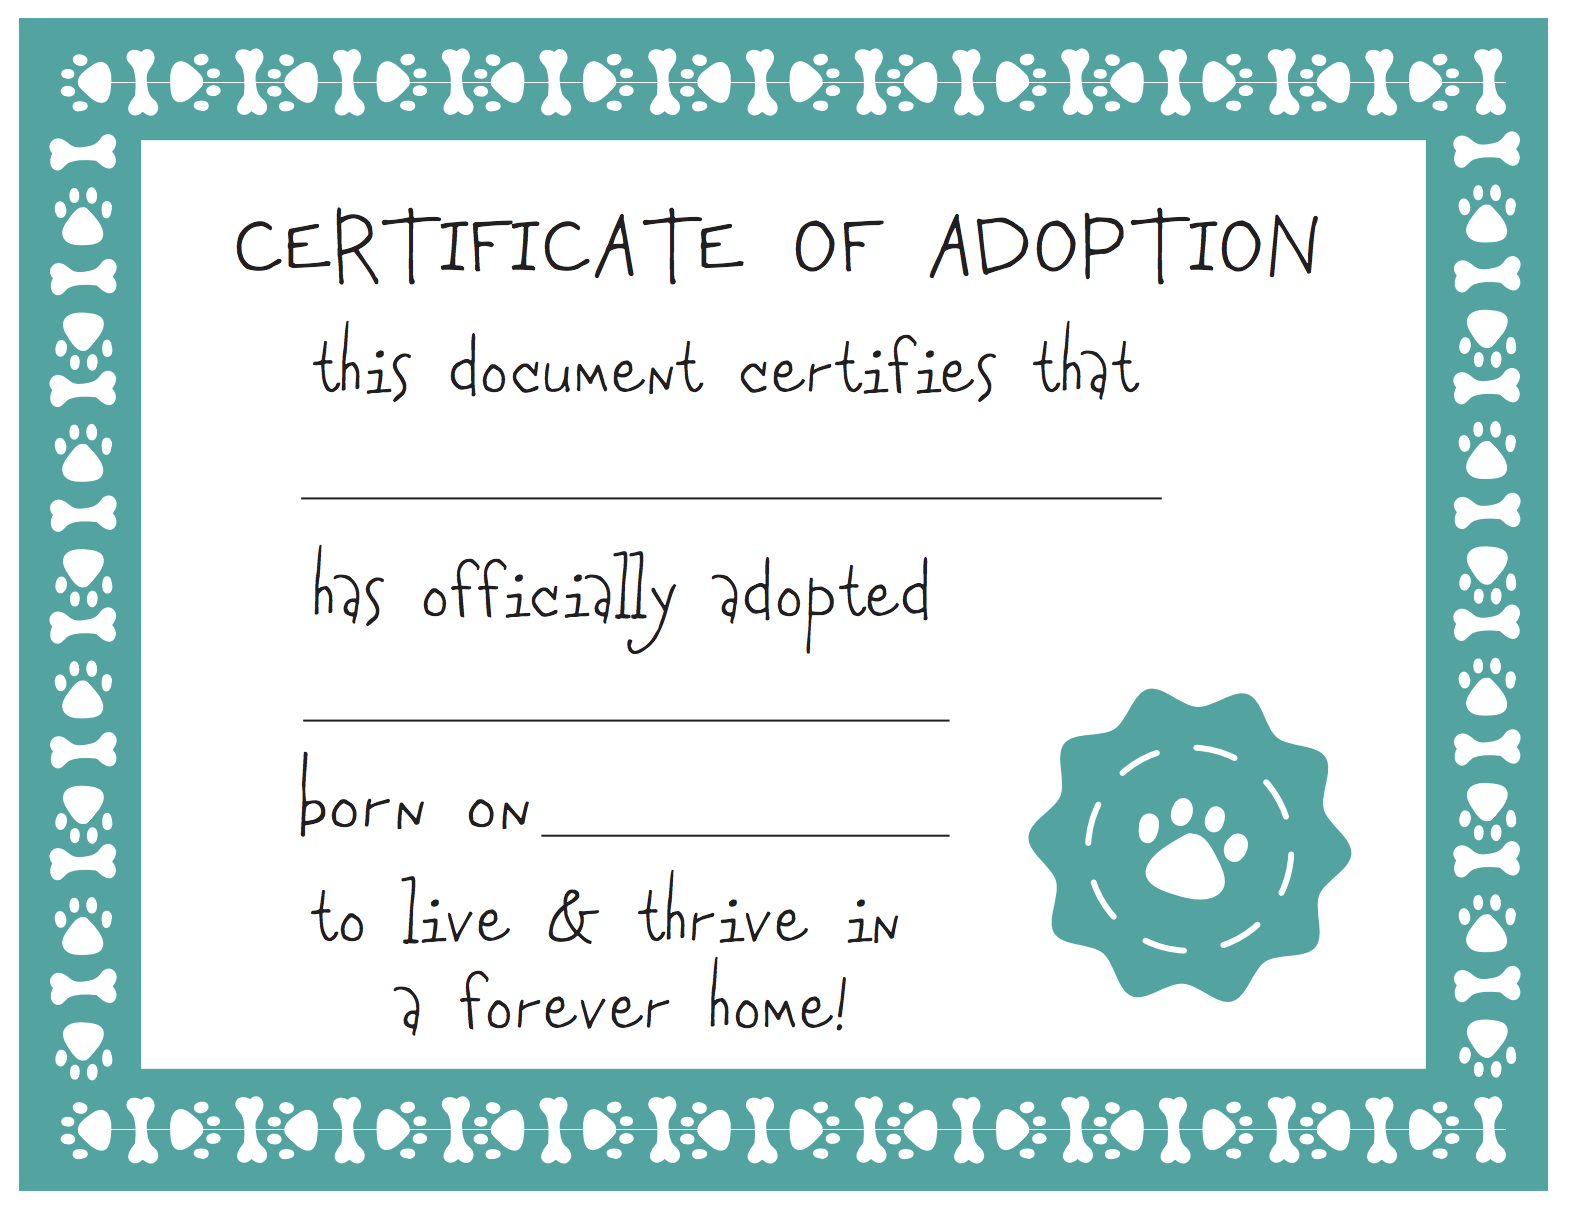 Adoption Certificate Template Free - Demir.iso-Consulting.co - Fake Adoption Certificate Free Printable